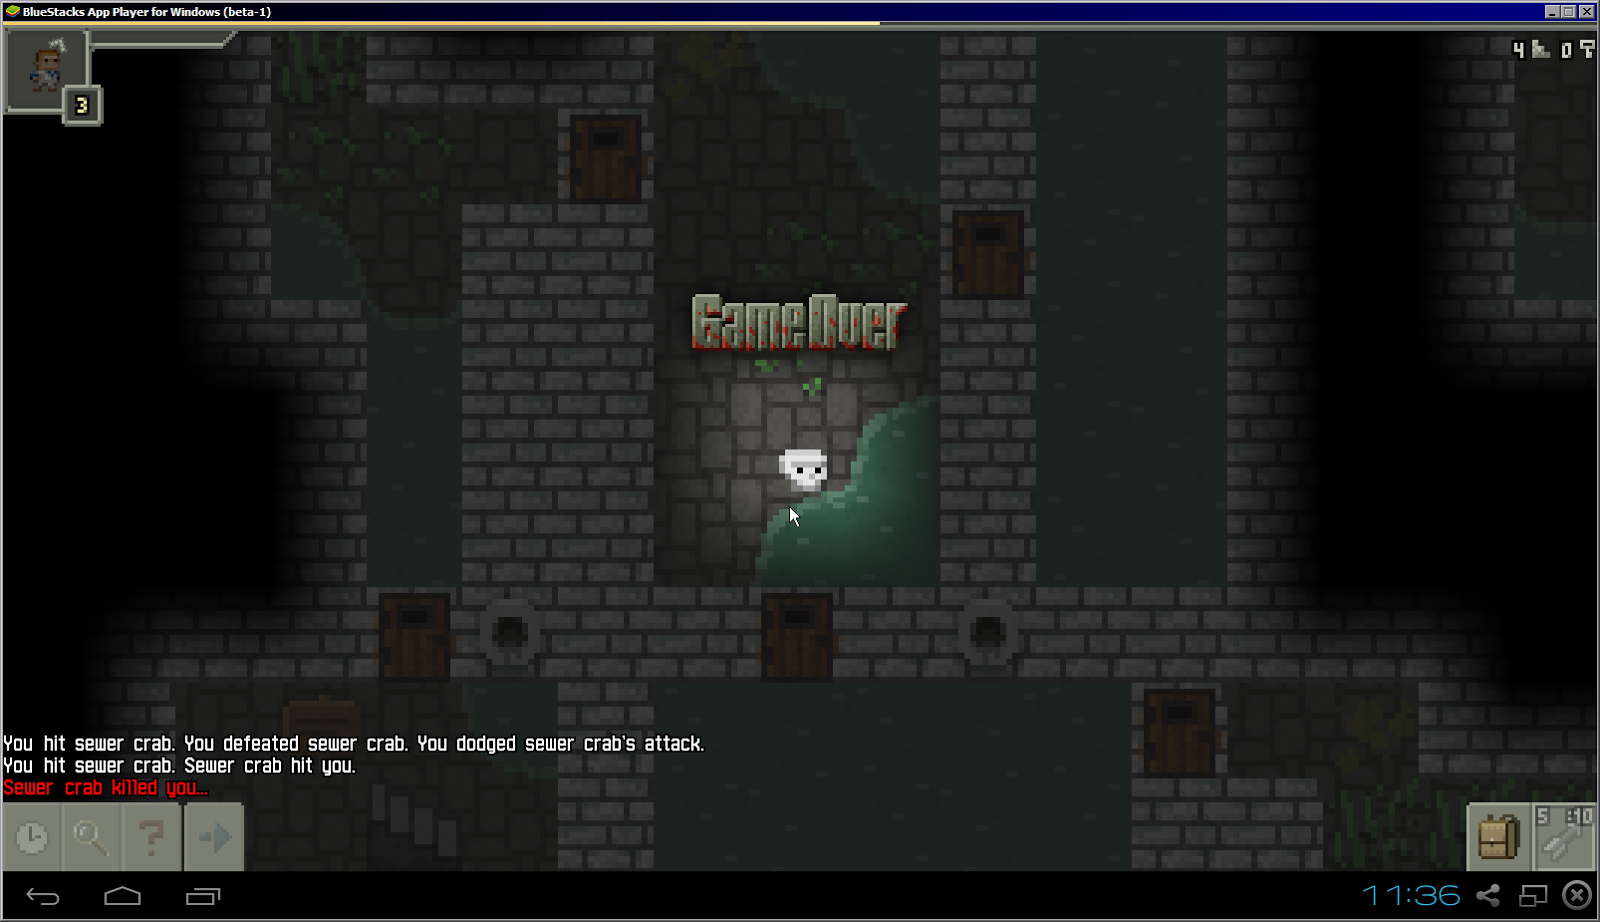 Pixel Dungeon game over screen